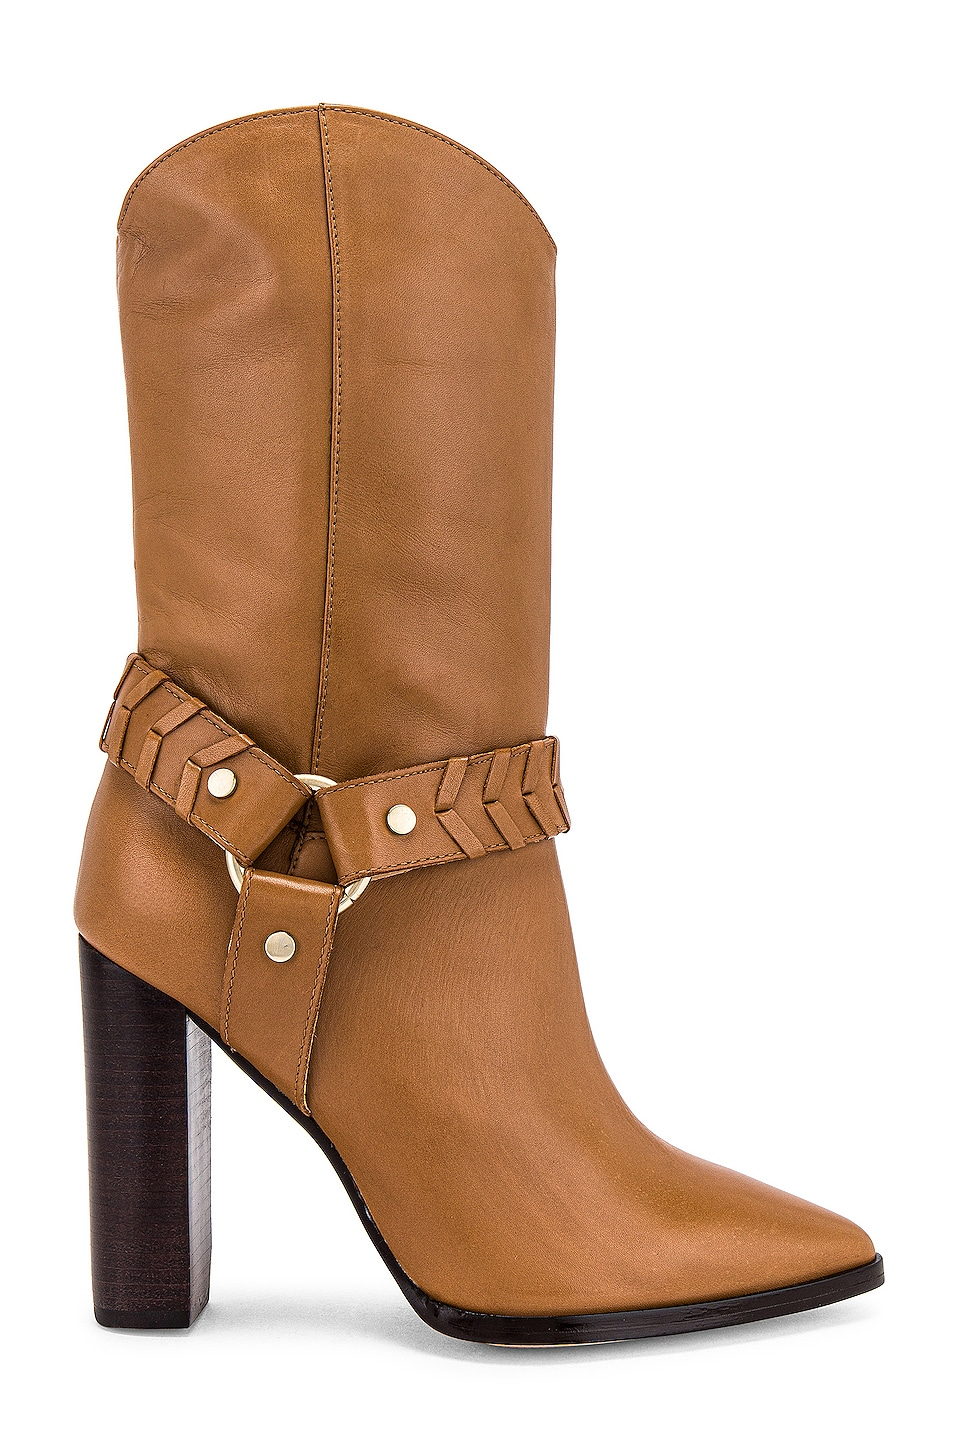 House of Harlow 1960 x REVOLVE Amelia Boot in Rust